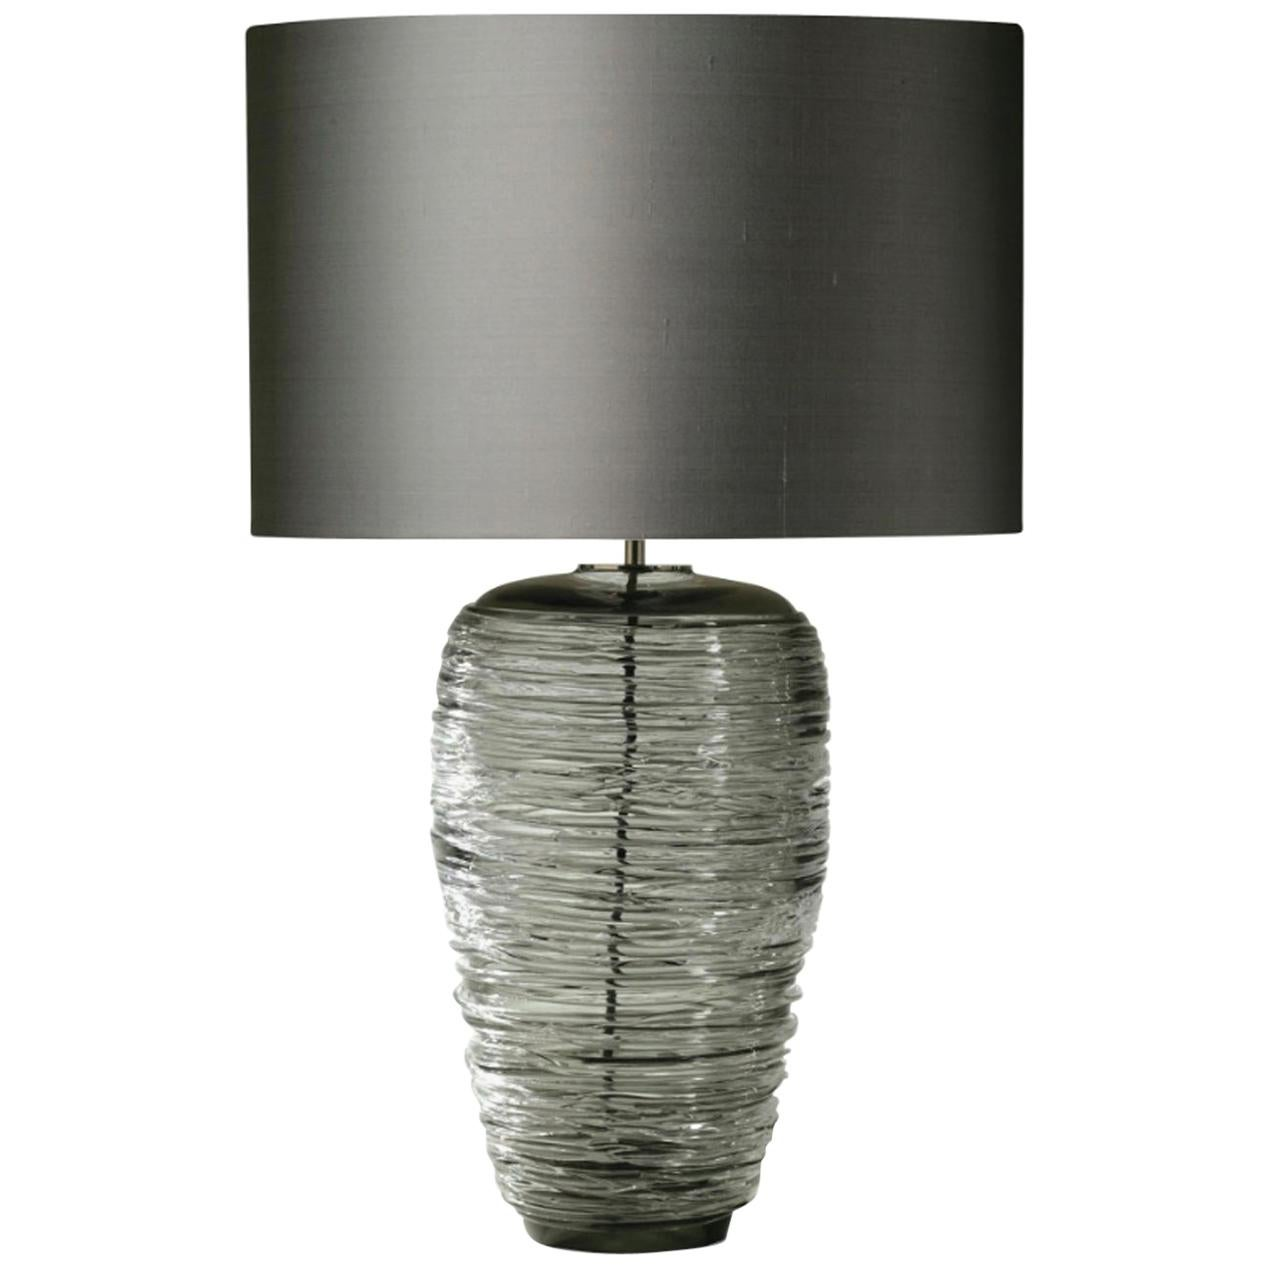 New And Custom Table Lamps